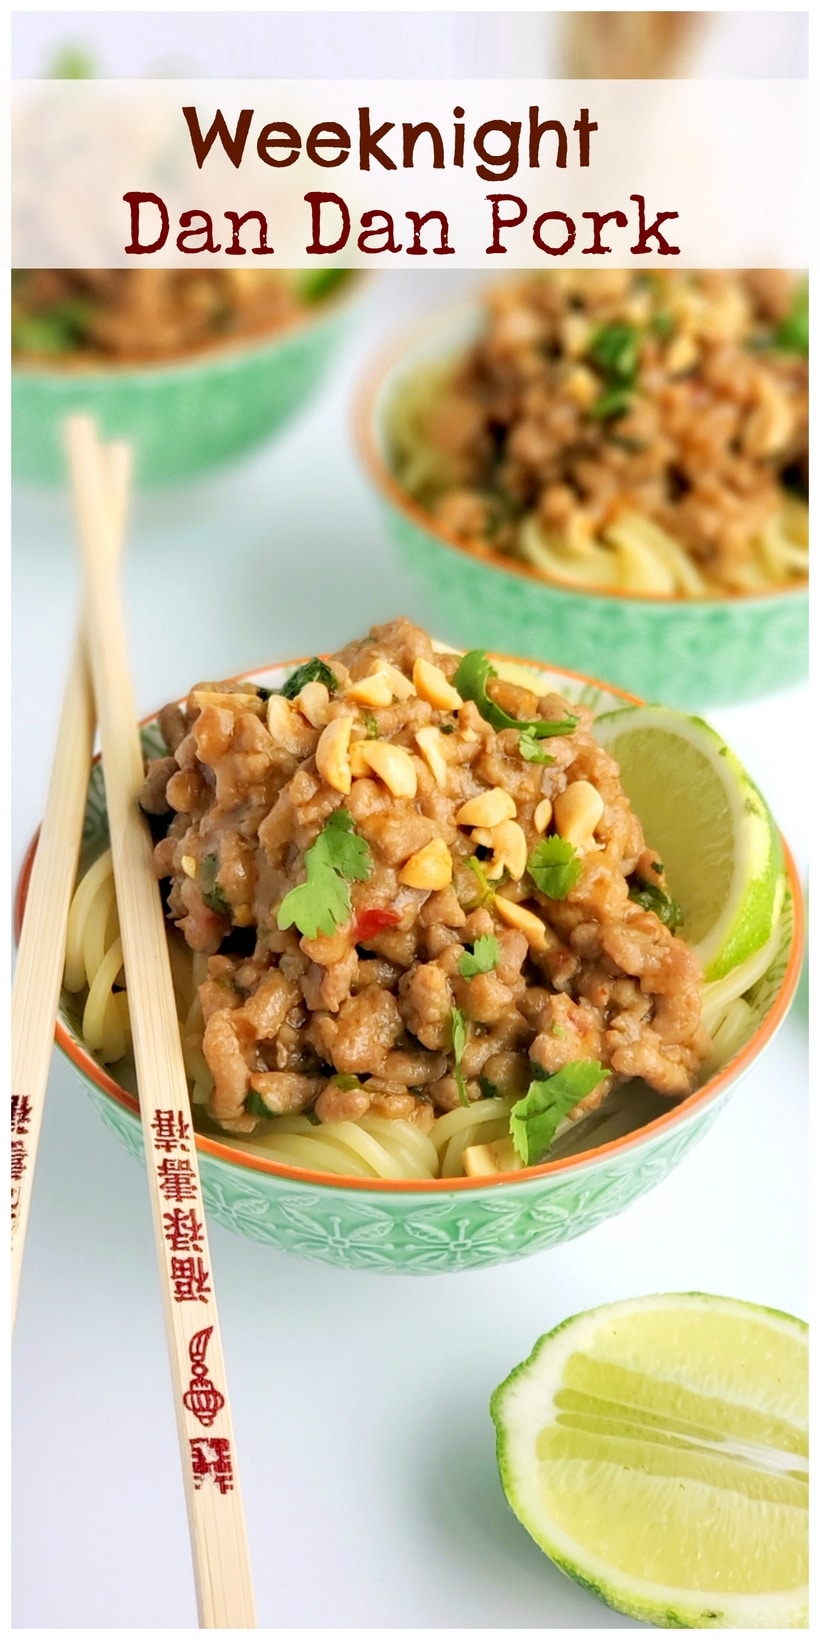 Weeknight Dan Dan Pork, a favorite Chinese take out dish, made simpler with easy to find ingredients and served over readily available spaghetti noodles. Almost guaranteed the whole family will ask for a repeat performance of this dish on the regular.  via @cmpollak1